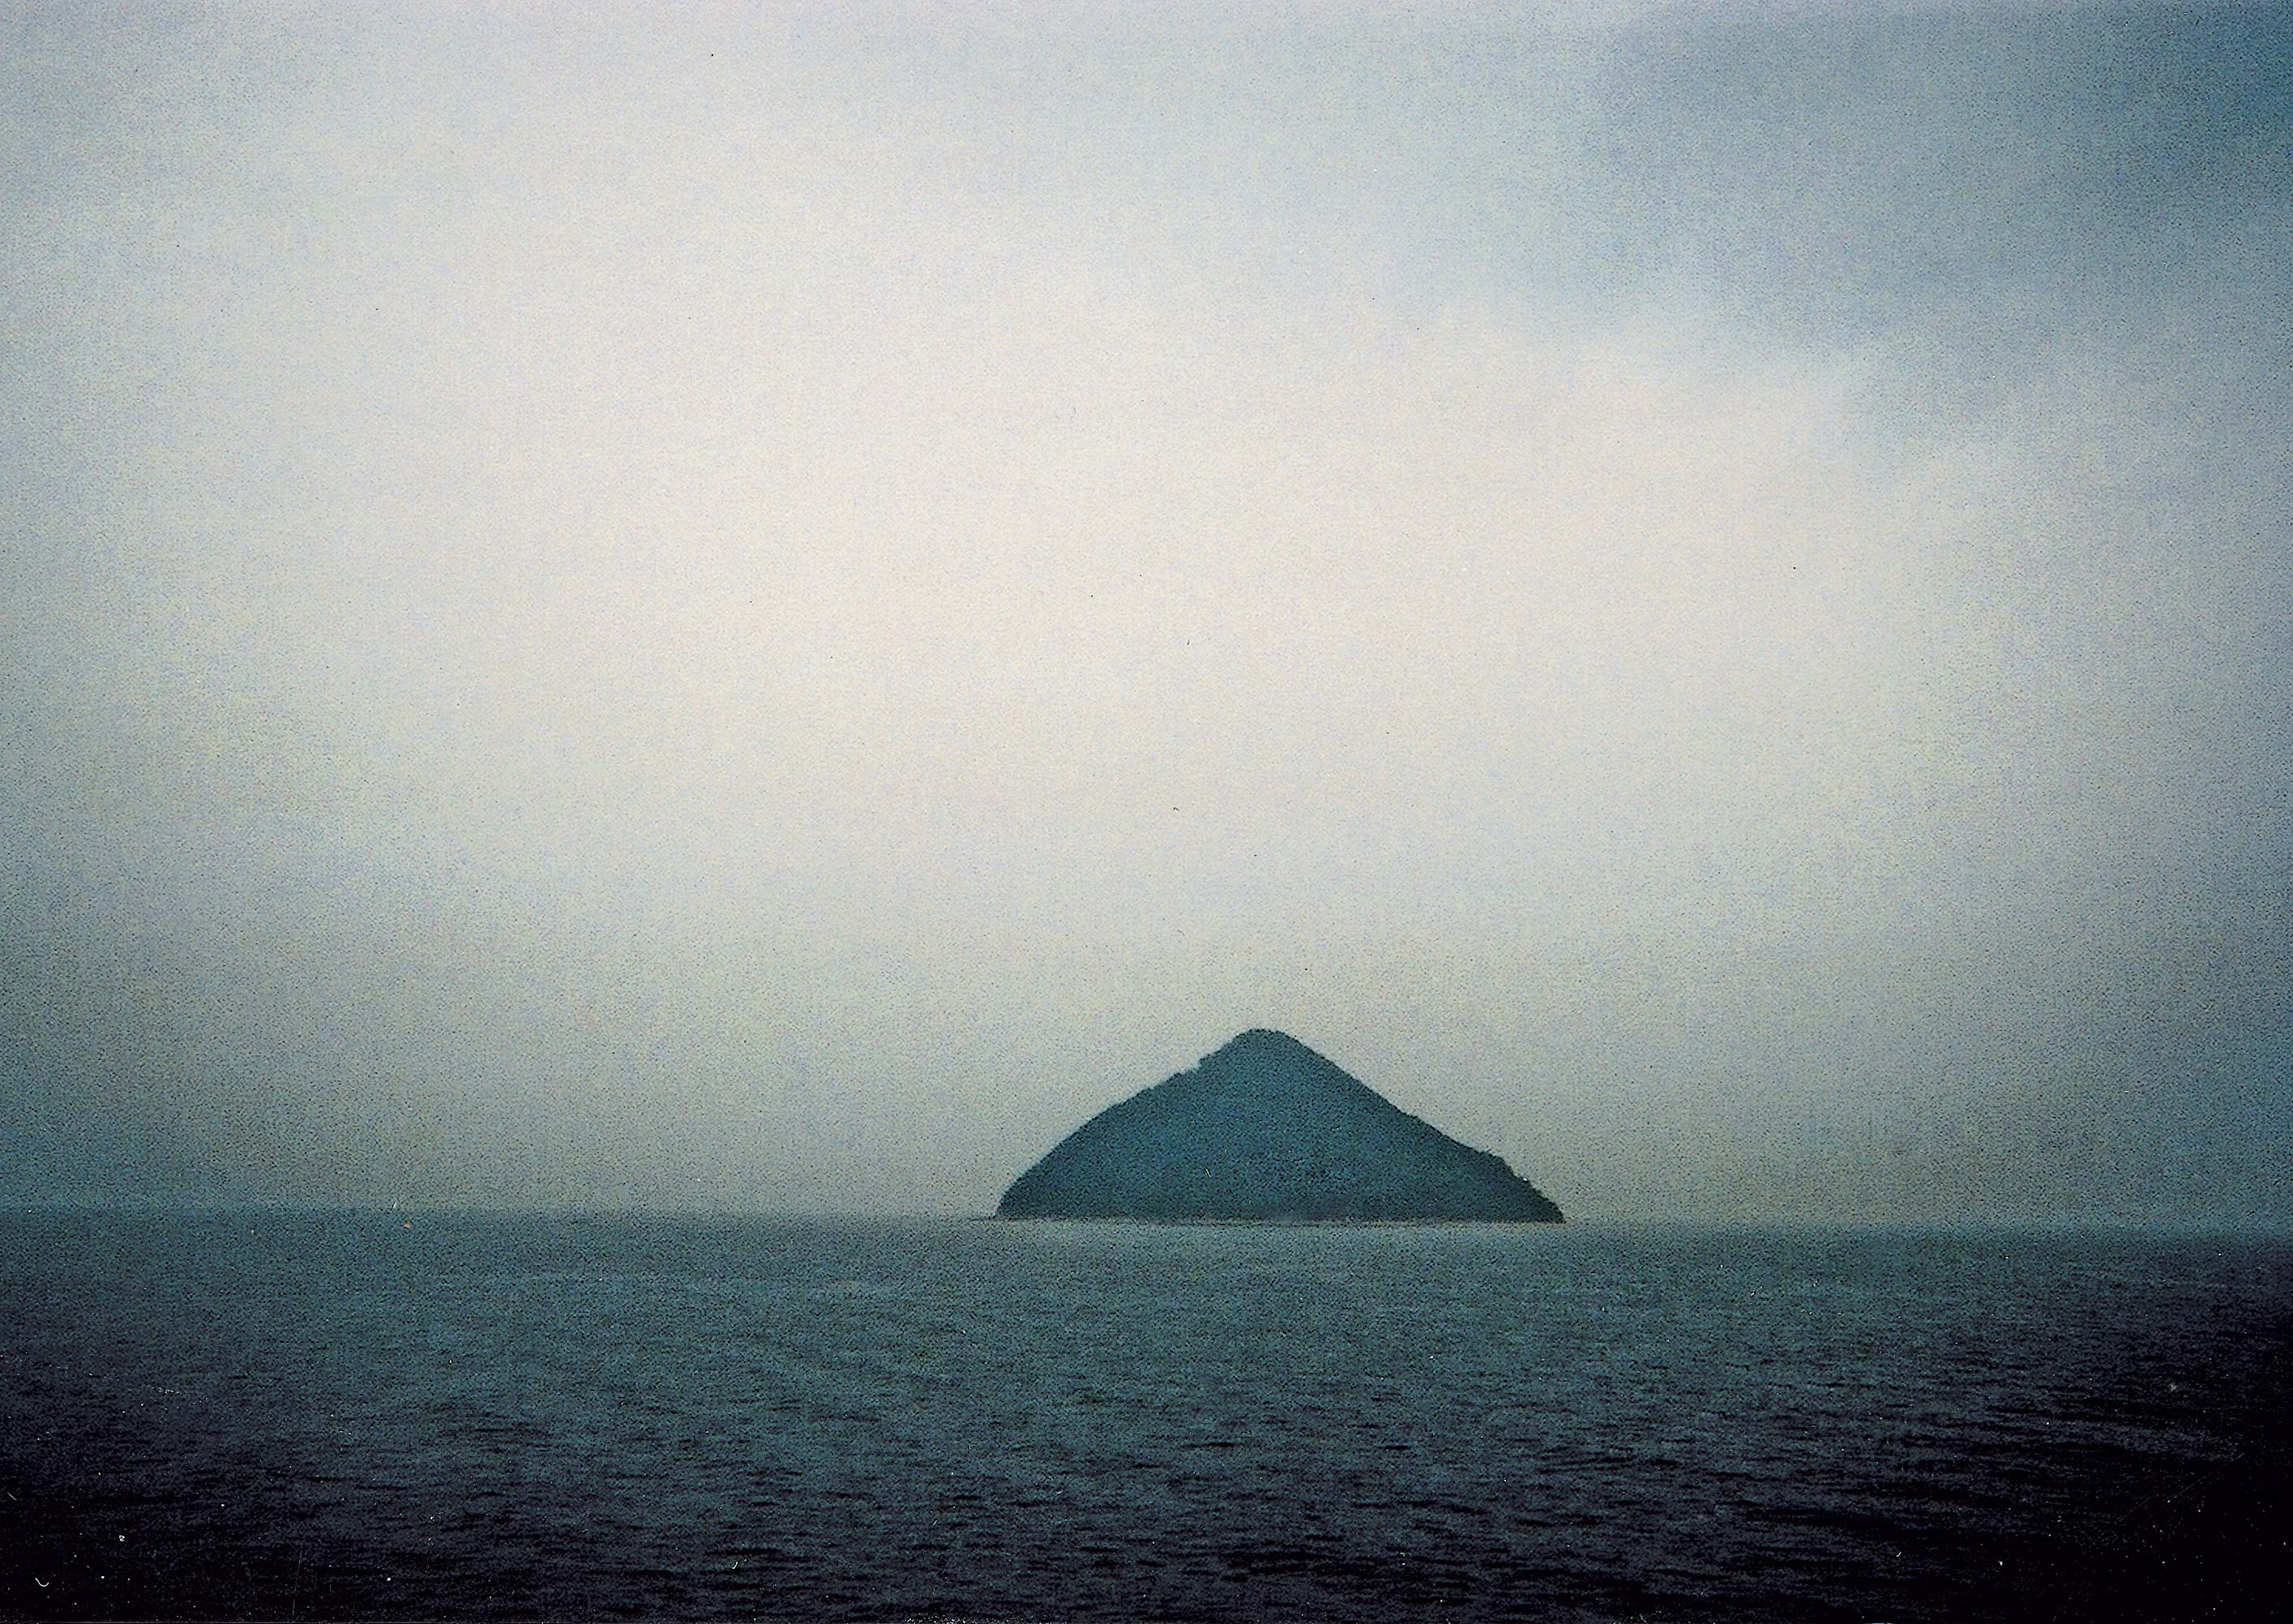 Christian Boltanski Les Archives du Cœur The island of Teshima, Japan Courtesy dell'artista e Benesse Foundation Naoshima, Japan